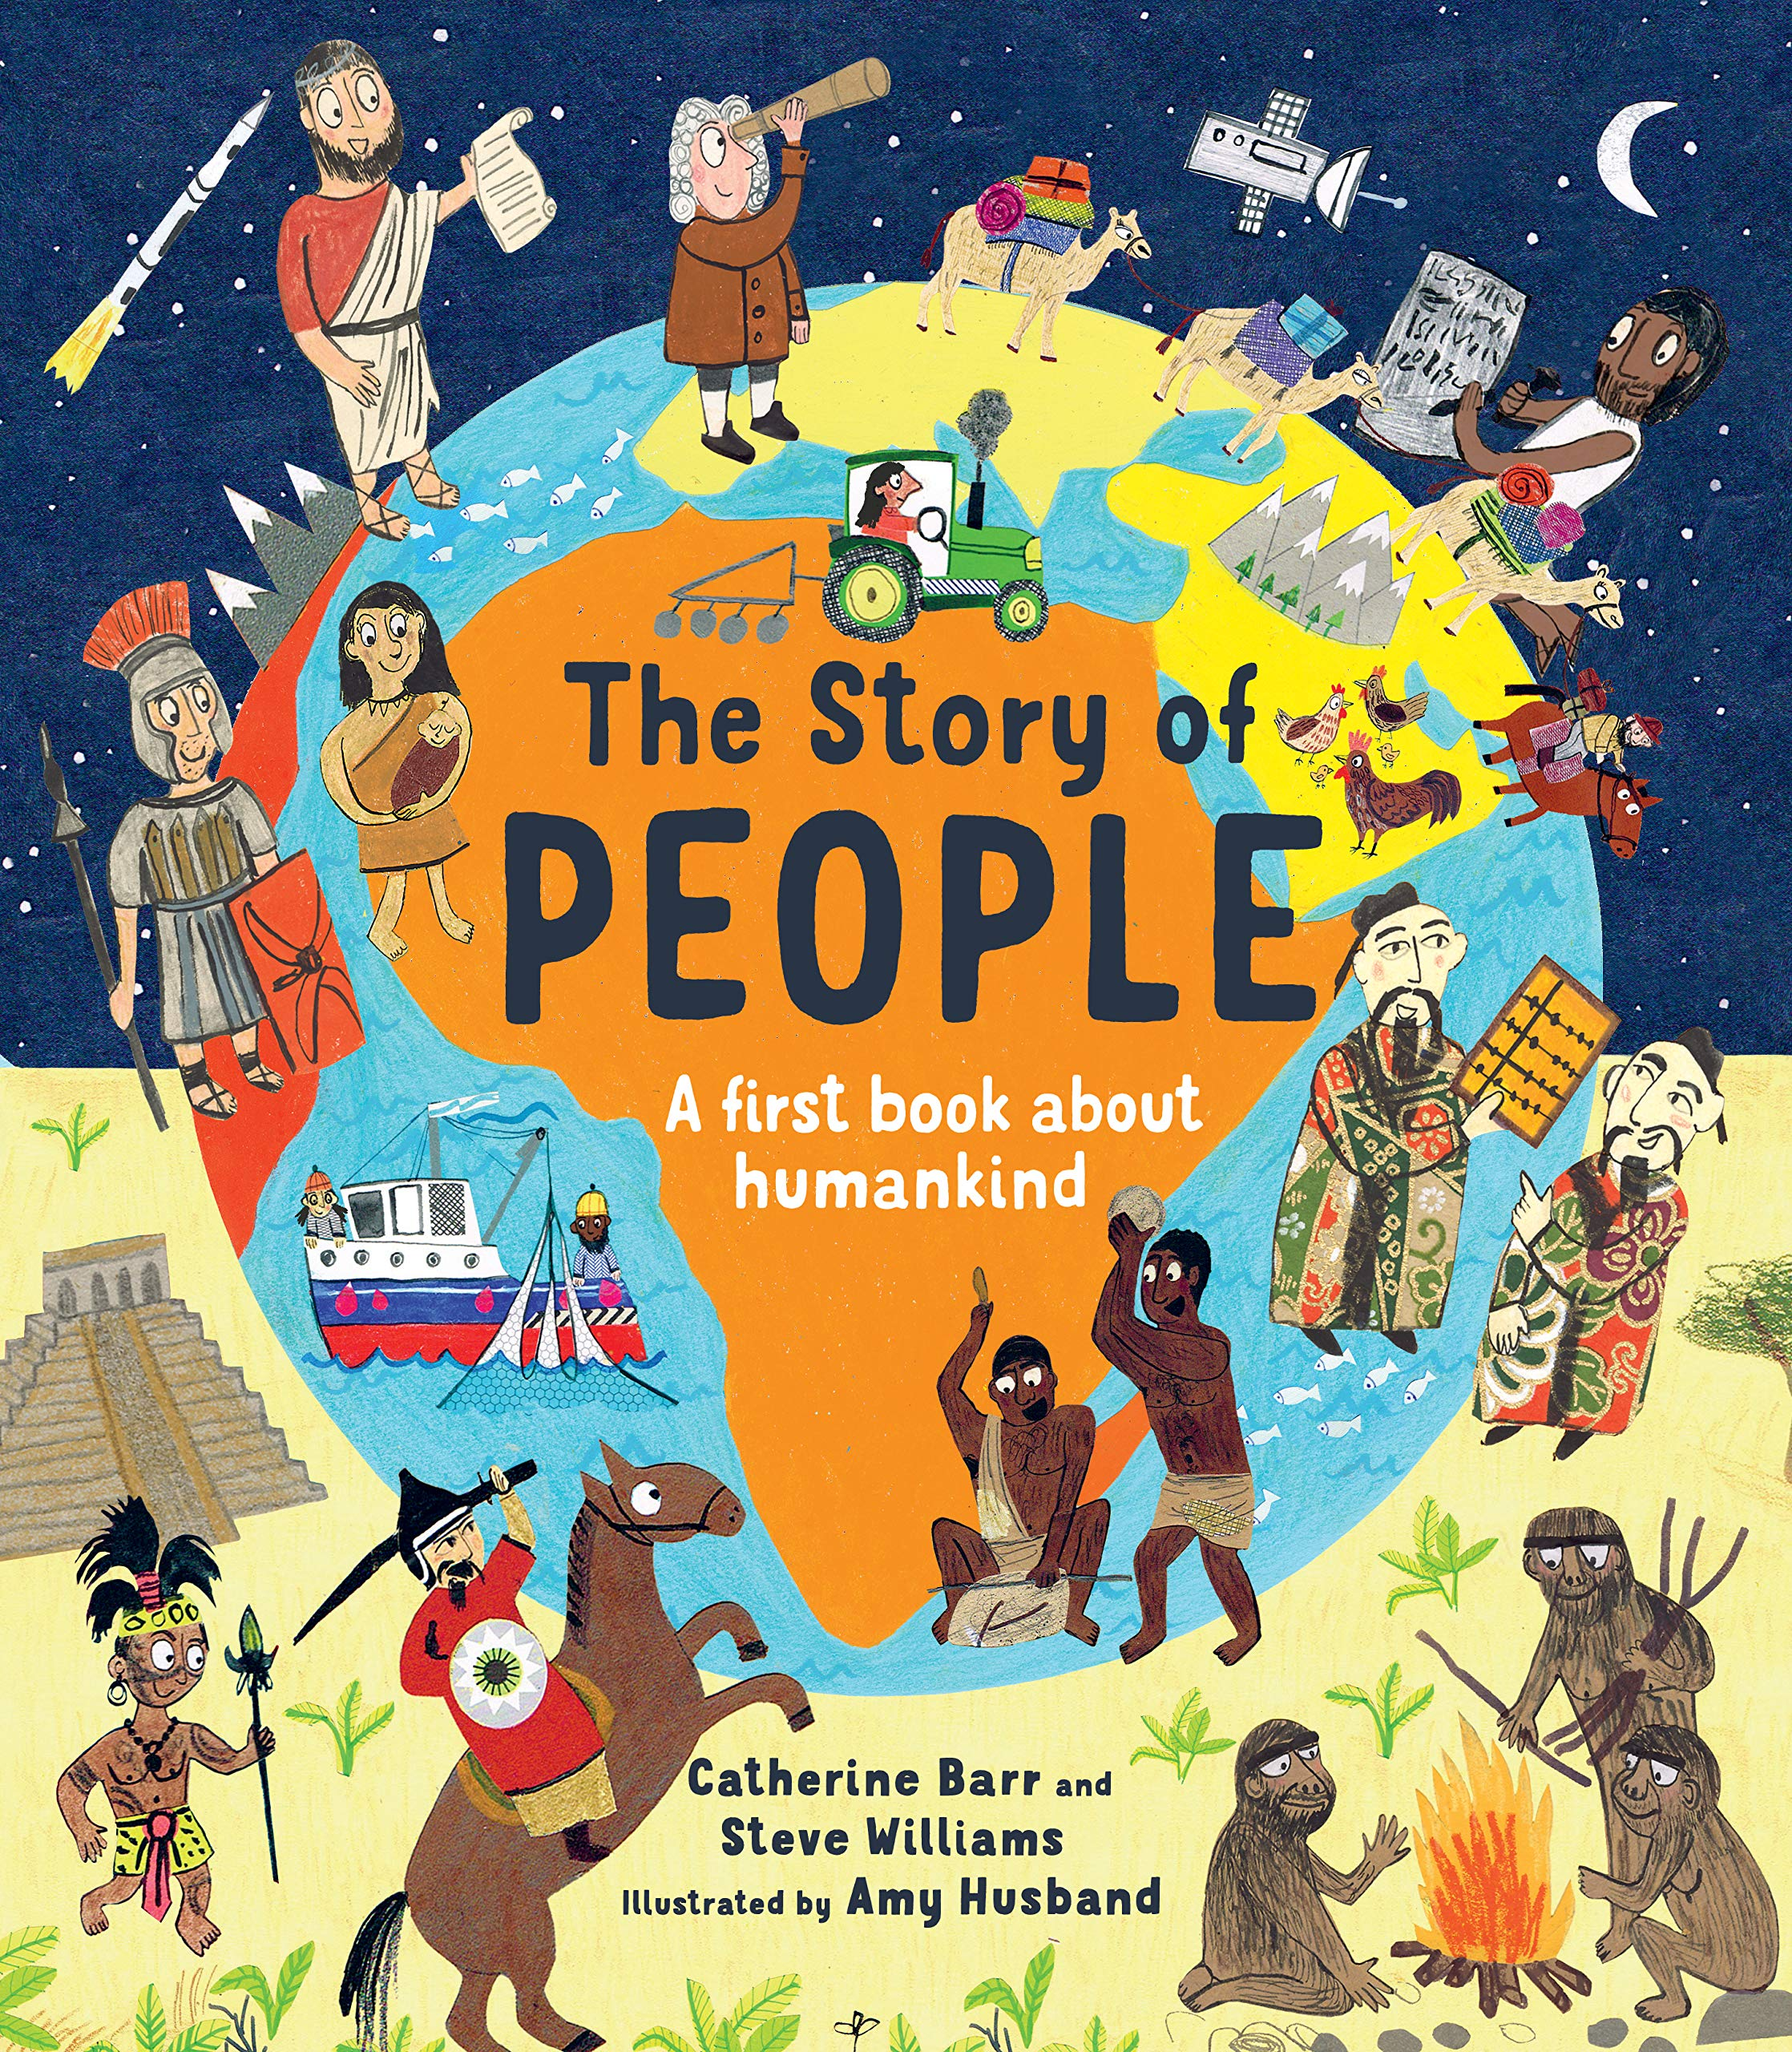 Be Wary Of Studies Incredible Tale Of >> The Story Of People Amazon Co Uk Catherine Barr Steve Williams